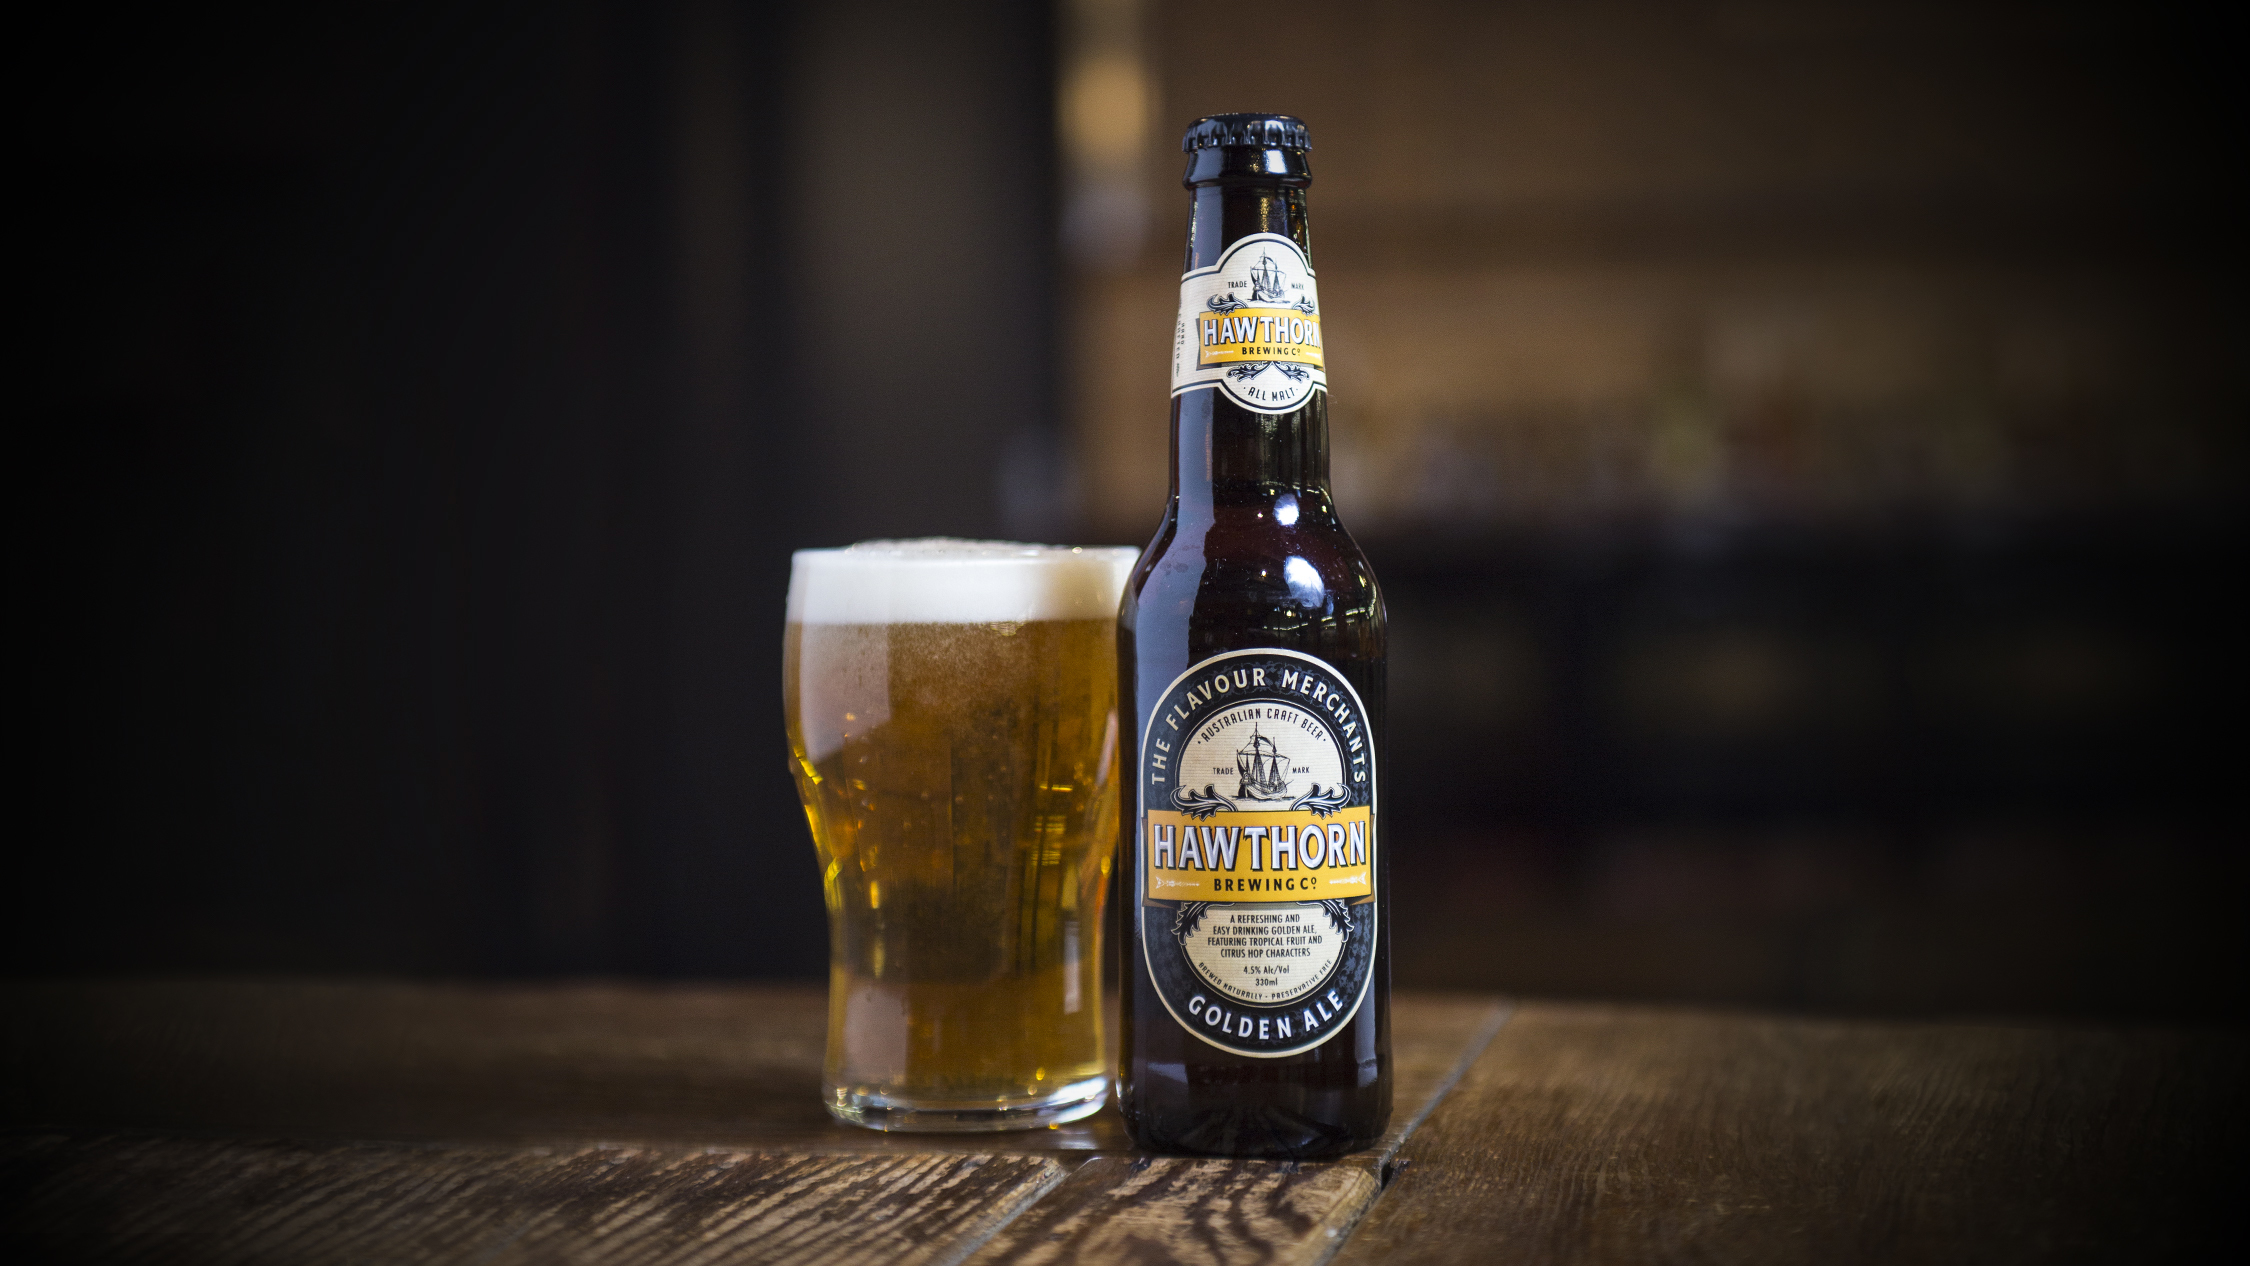 Hawthorn Brewing Co Golden Lager